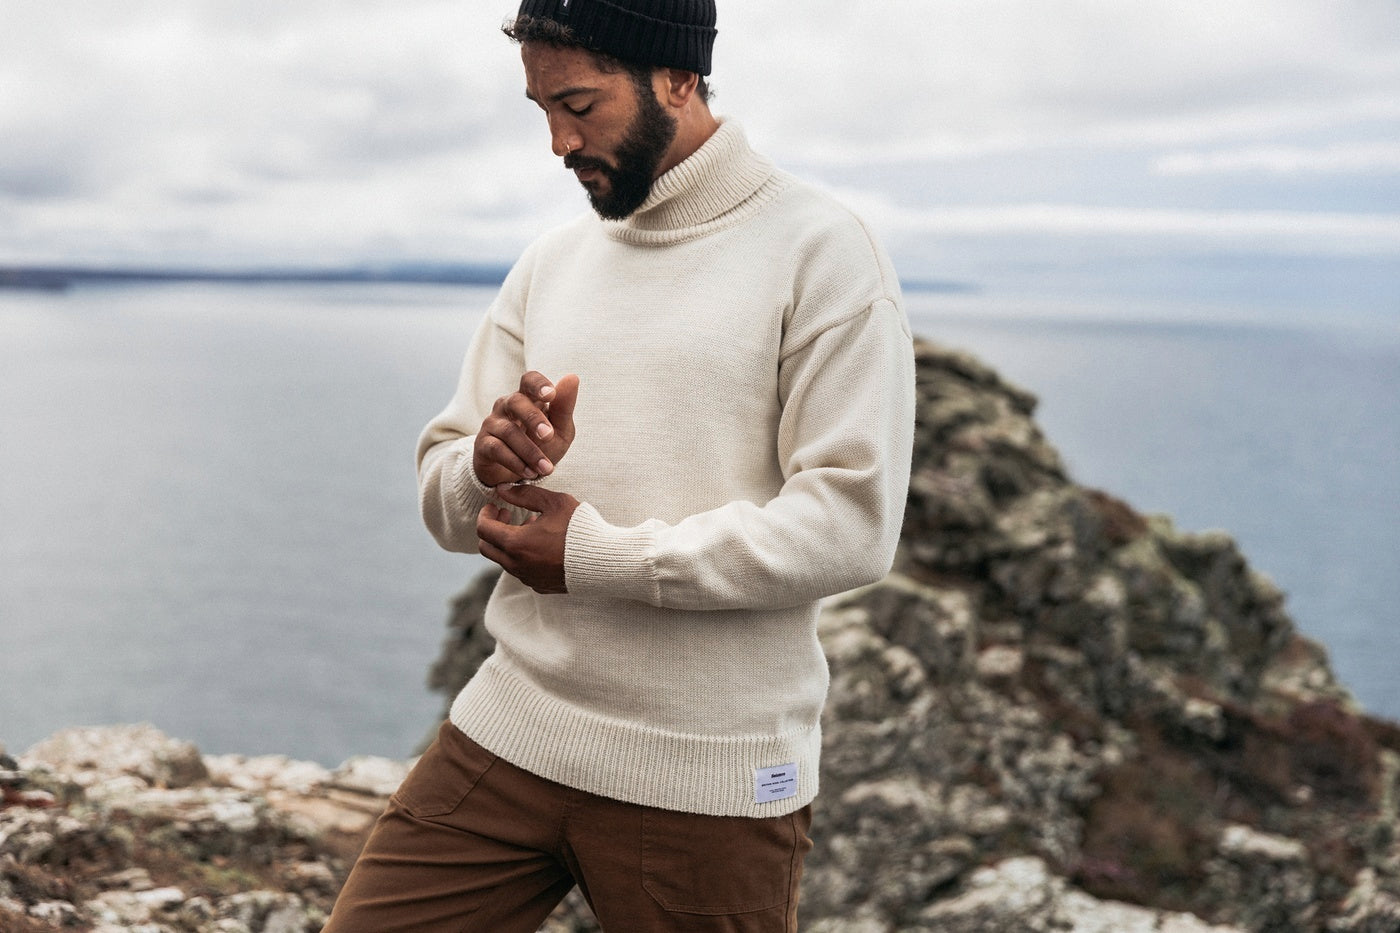 Man wearing the Finisterre Submariner jumper in white